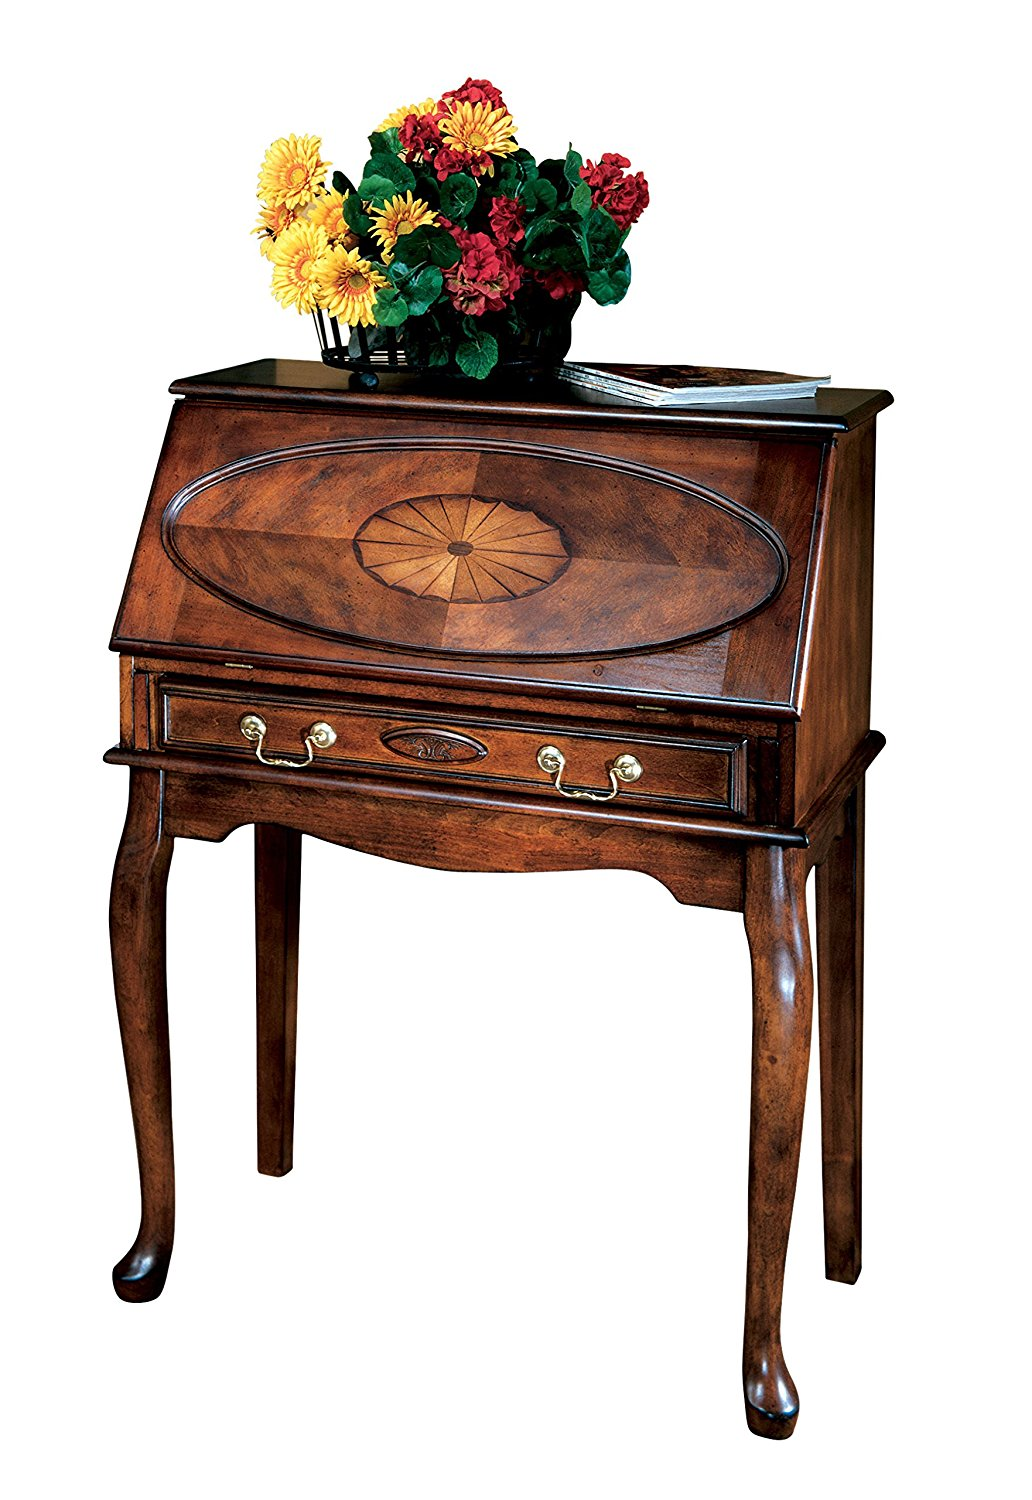 Home Office Secretary Desk Good for Dining Room, or Living Room Office Beutiful Brown Color, Good for Small Space Bedroom